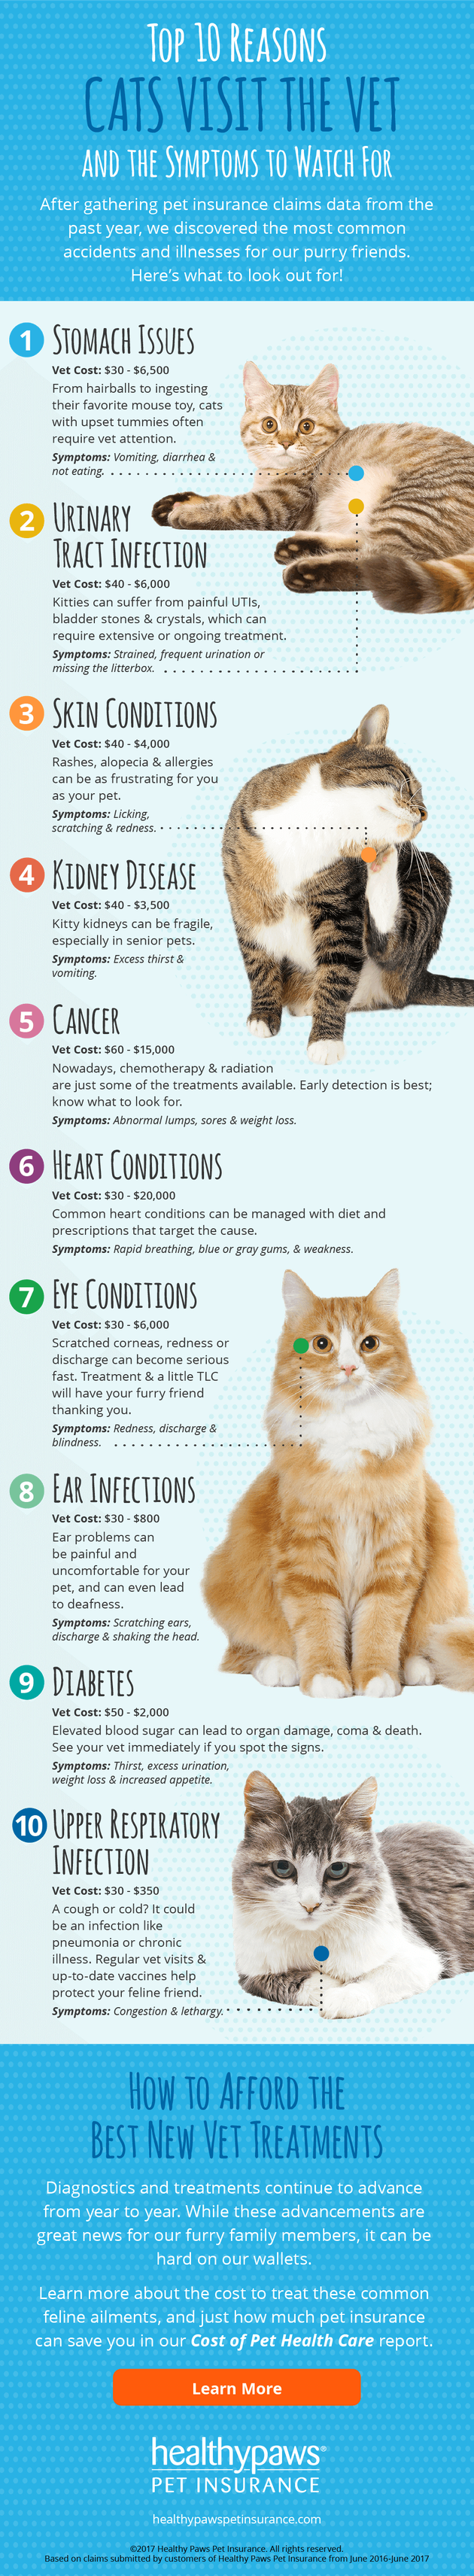 Top 10 Reasons Cats Visit The Vet